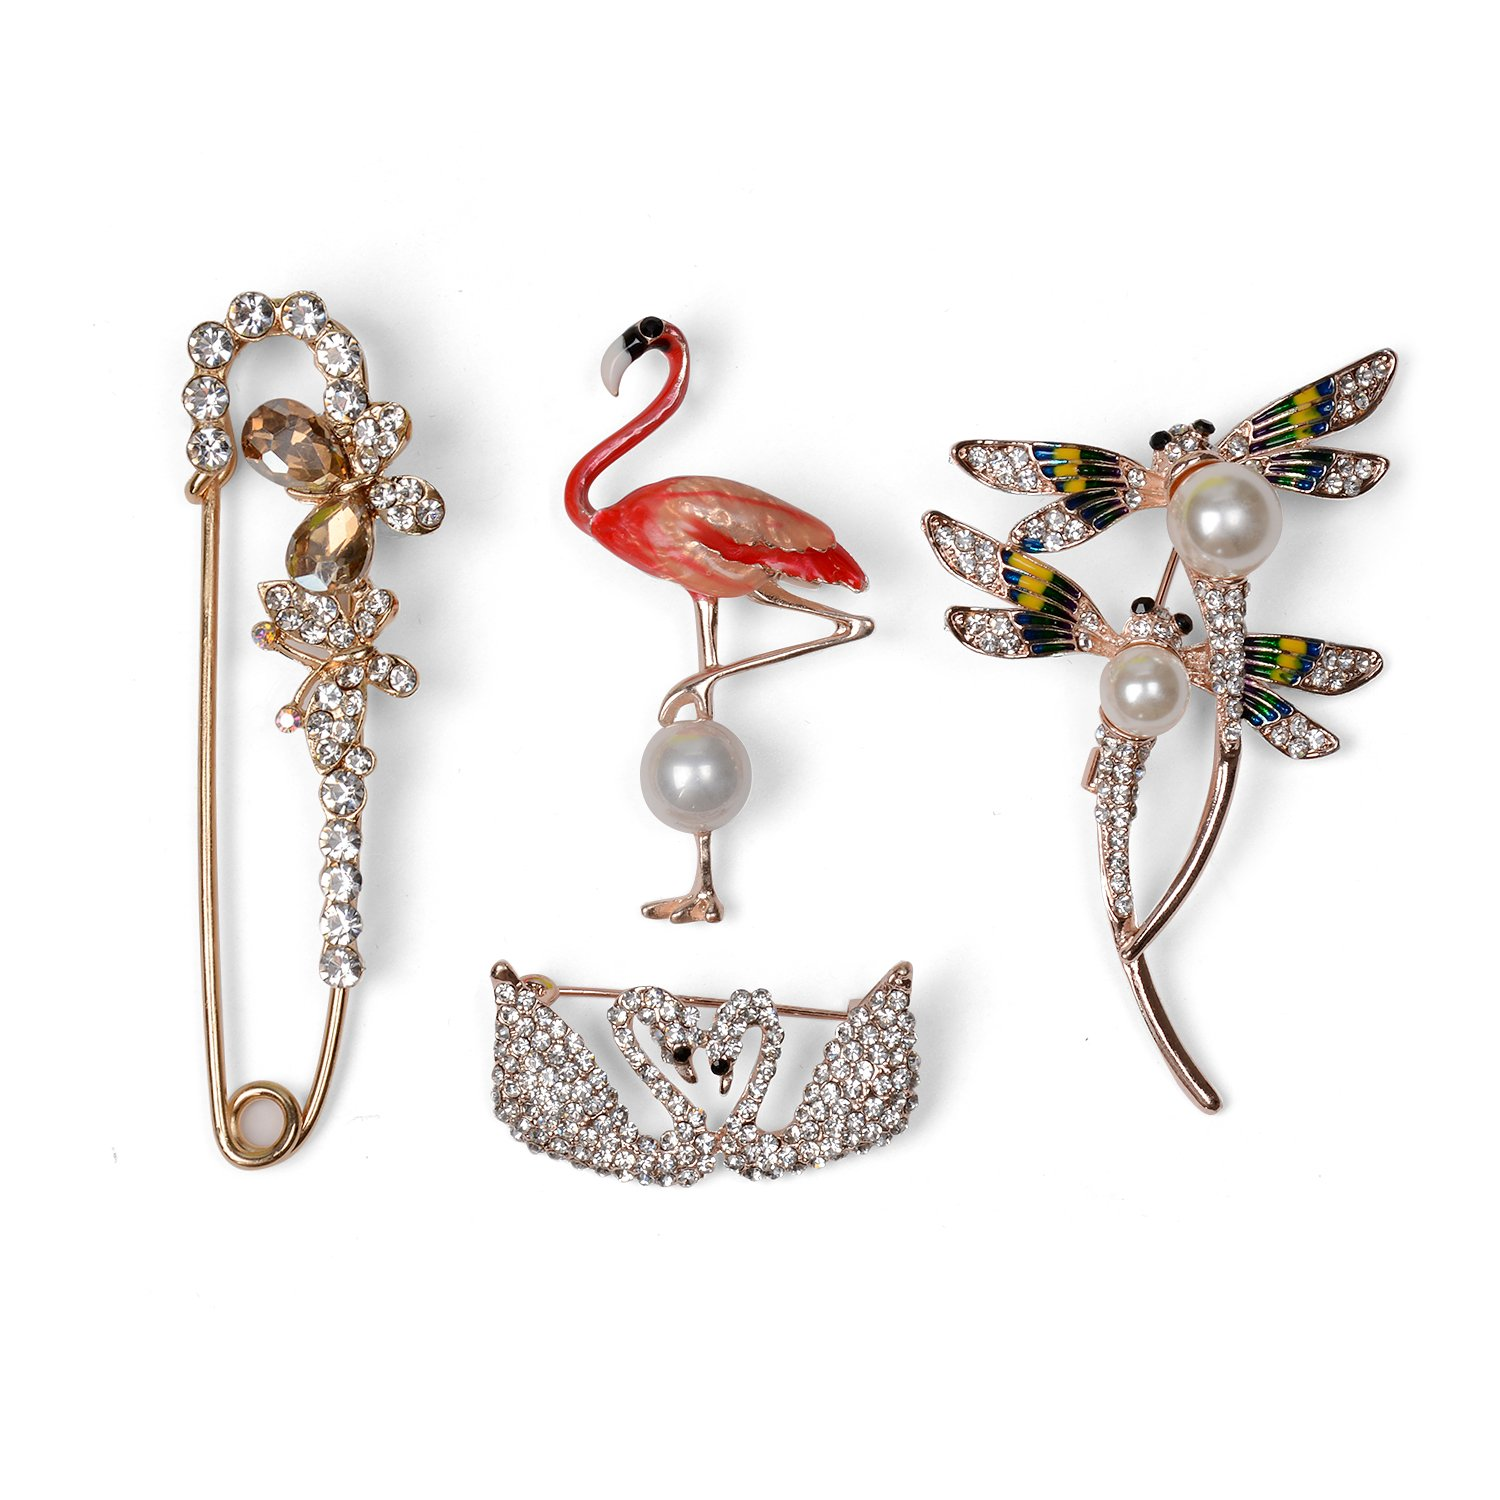 Holylove Brooches Pins Flamingo Dragonfly Swan Butterfly for Women Girl Men Wedding Formal Daily Photograph Bride Bridegroom Crafts 4pcs with Gift Box - HLP1